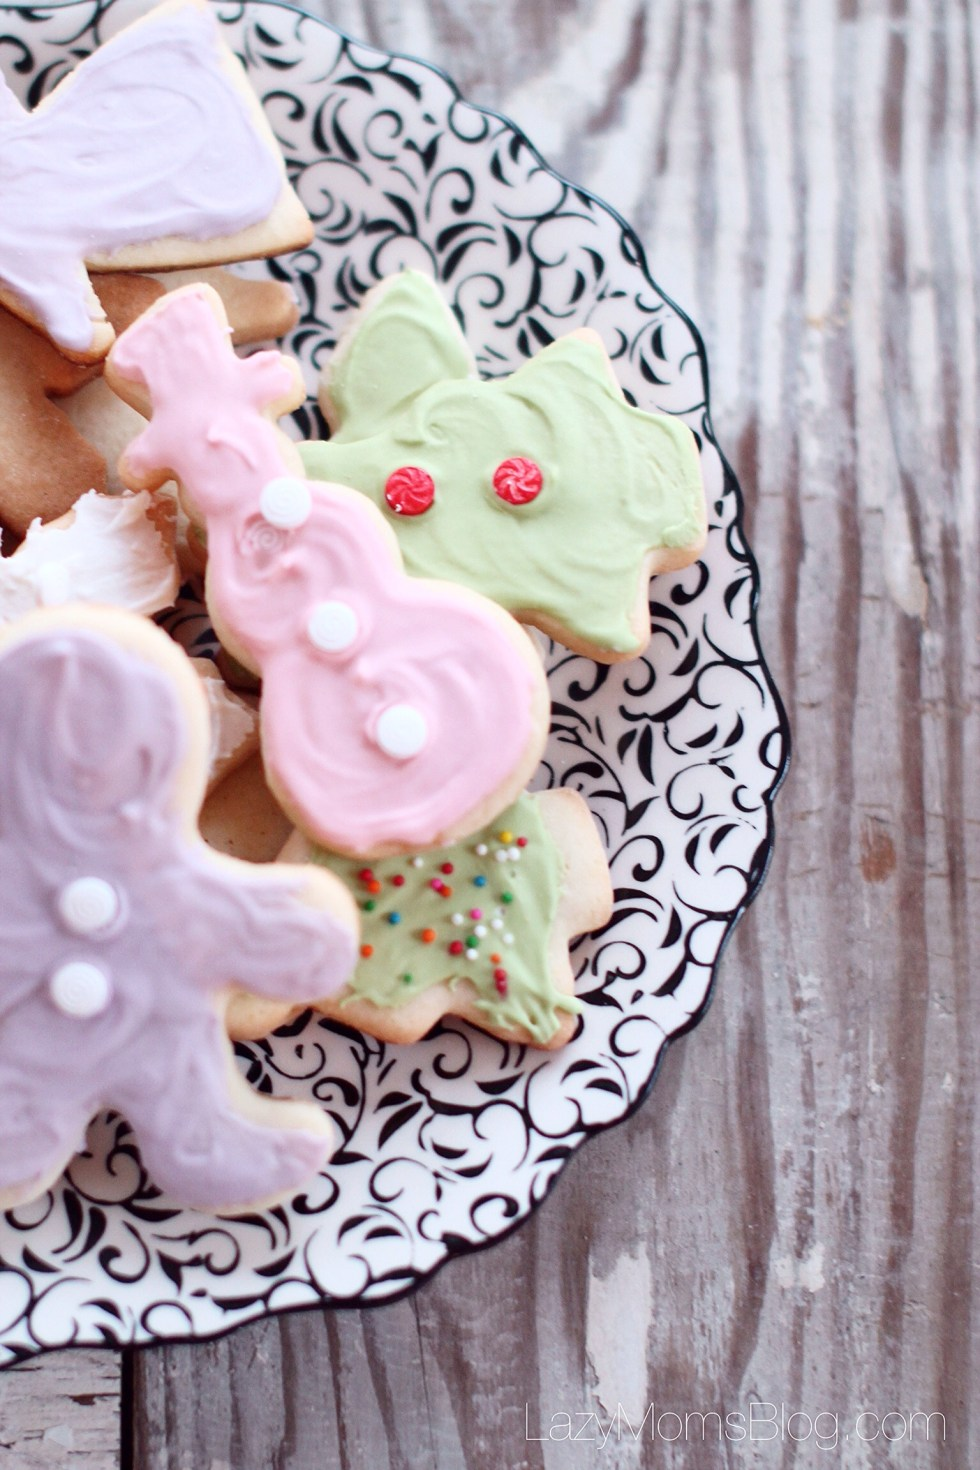 These are the best sugar cookies that I ever had!